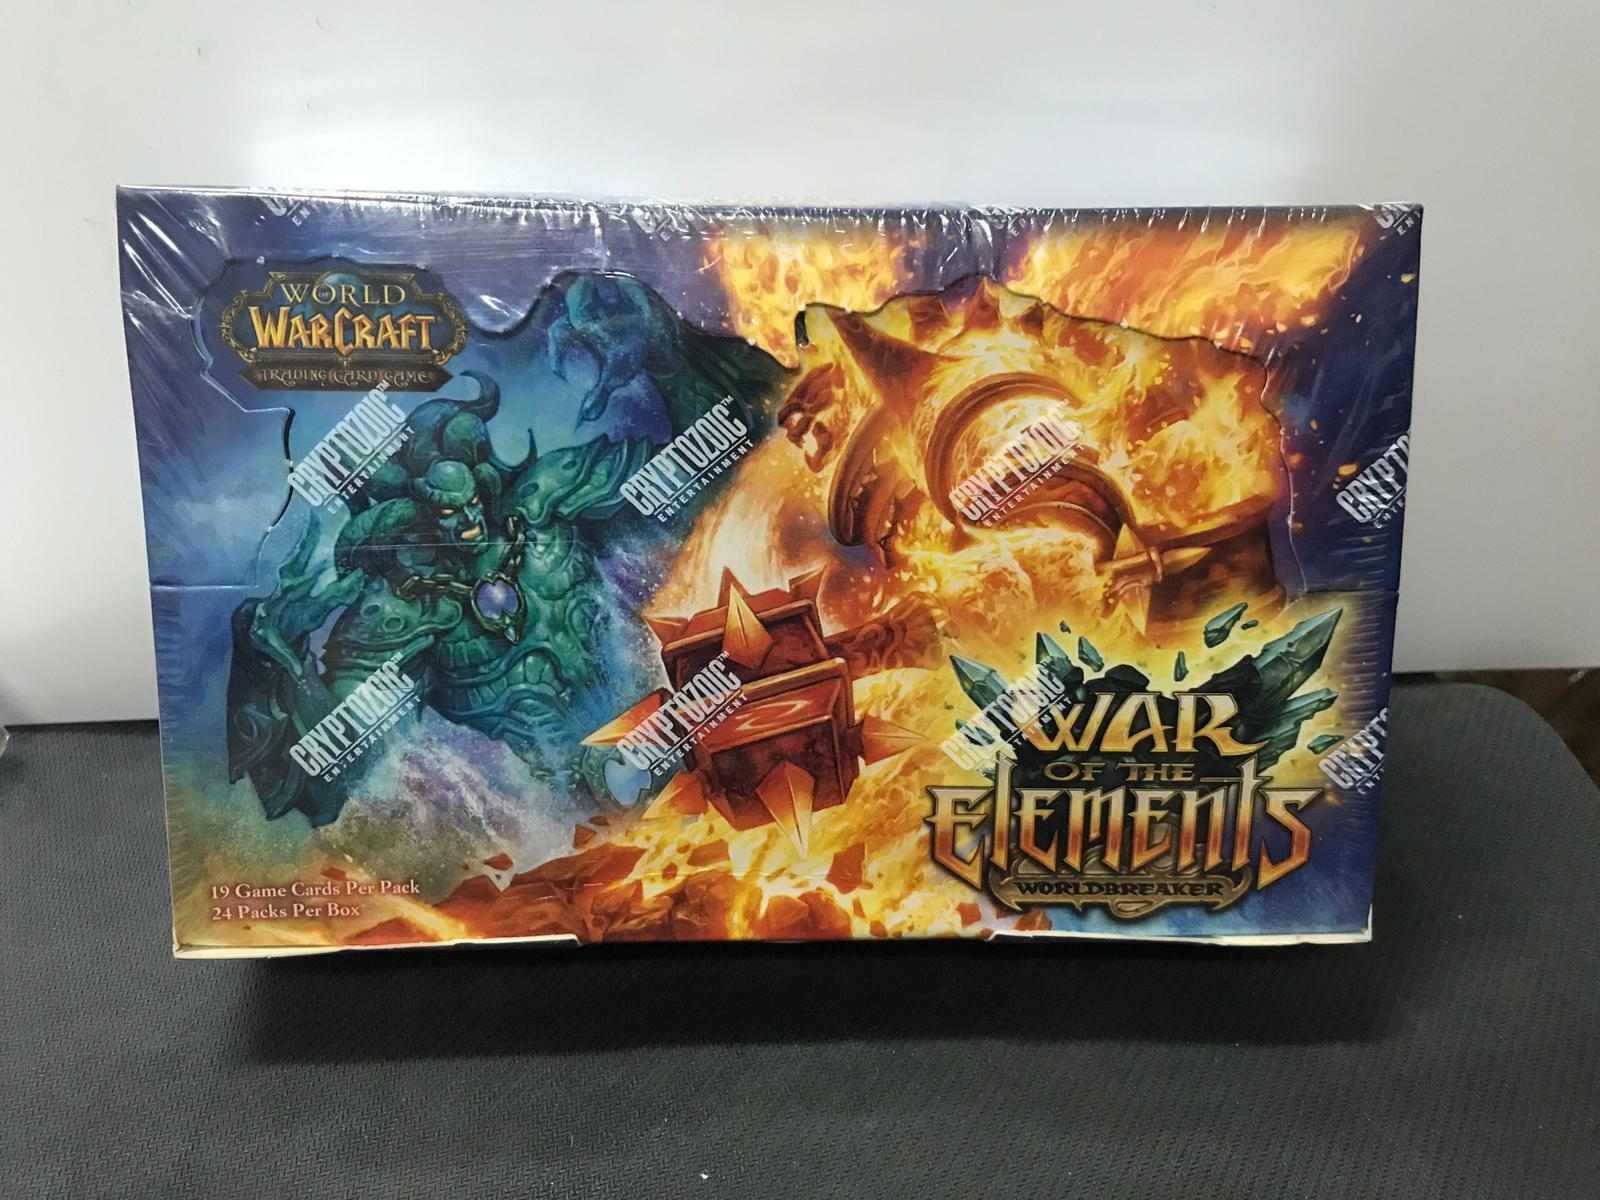 NEW FACTORY SEALED TCG World of Warcraft War of Elements English Booster Box x1